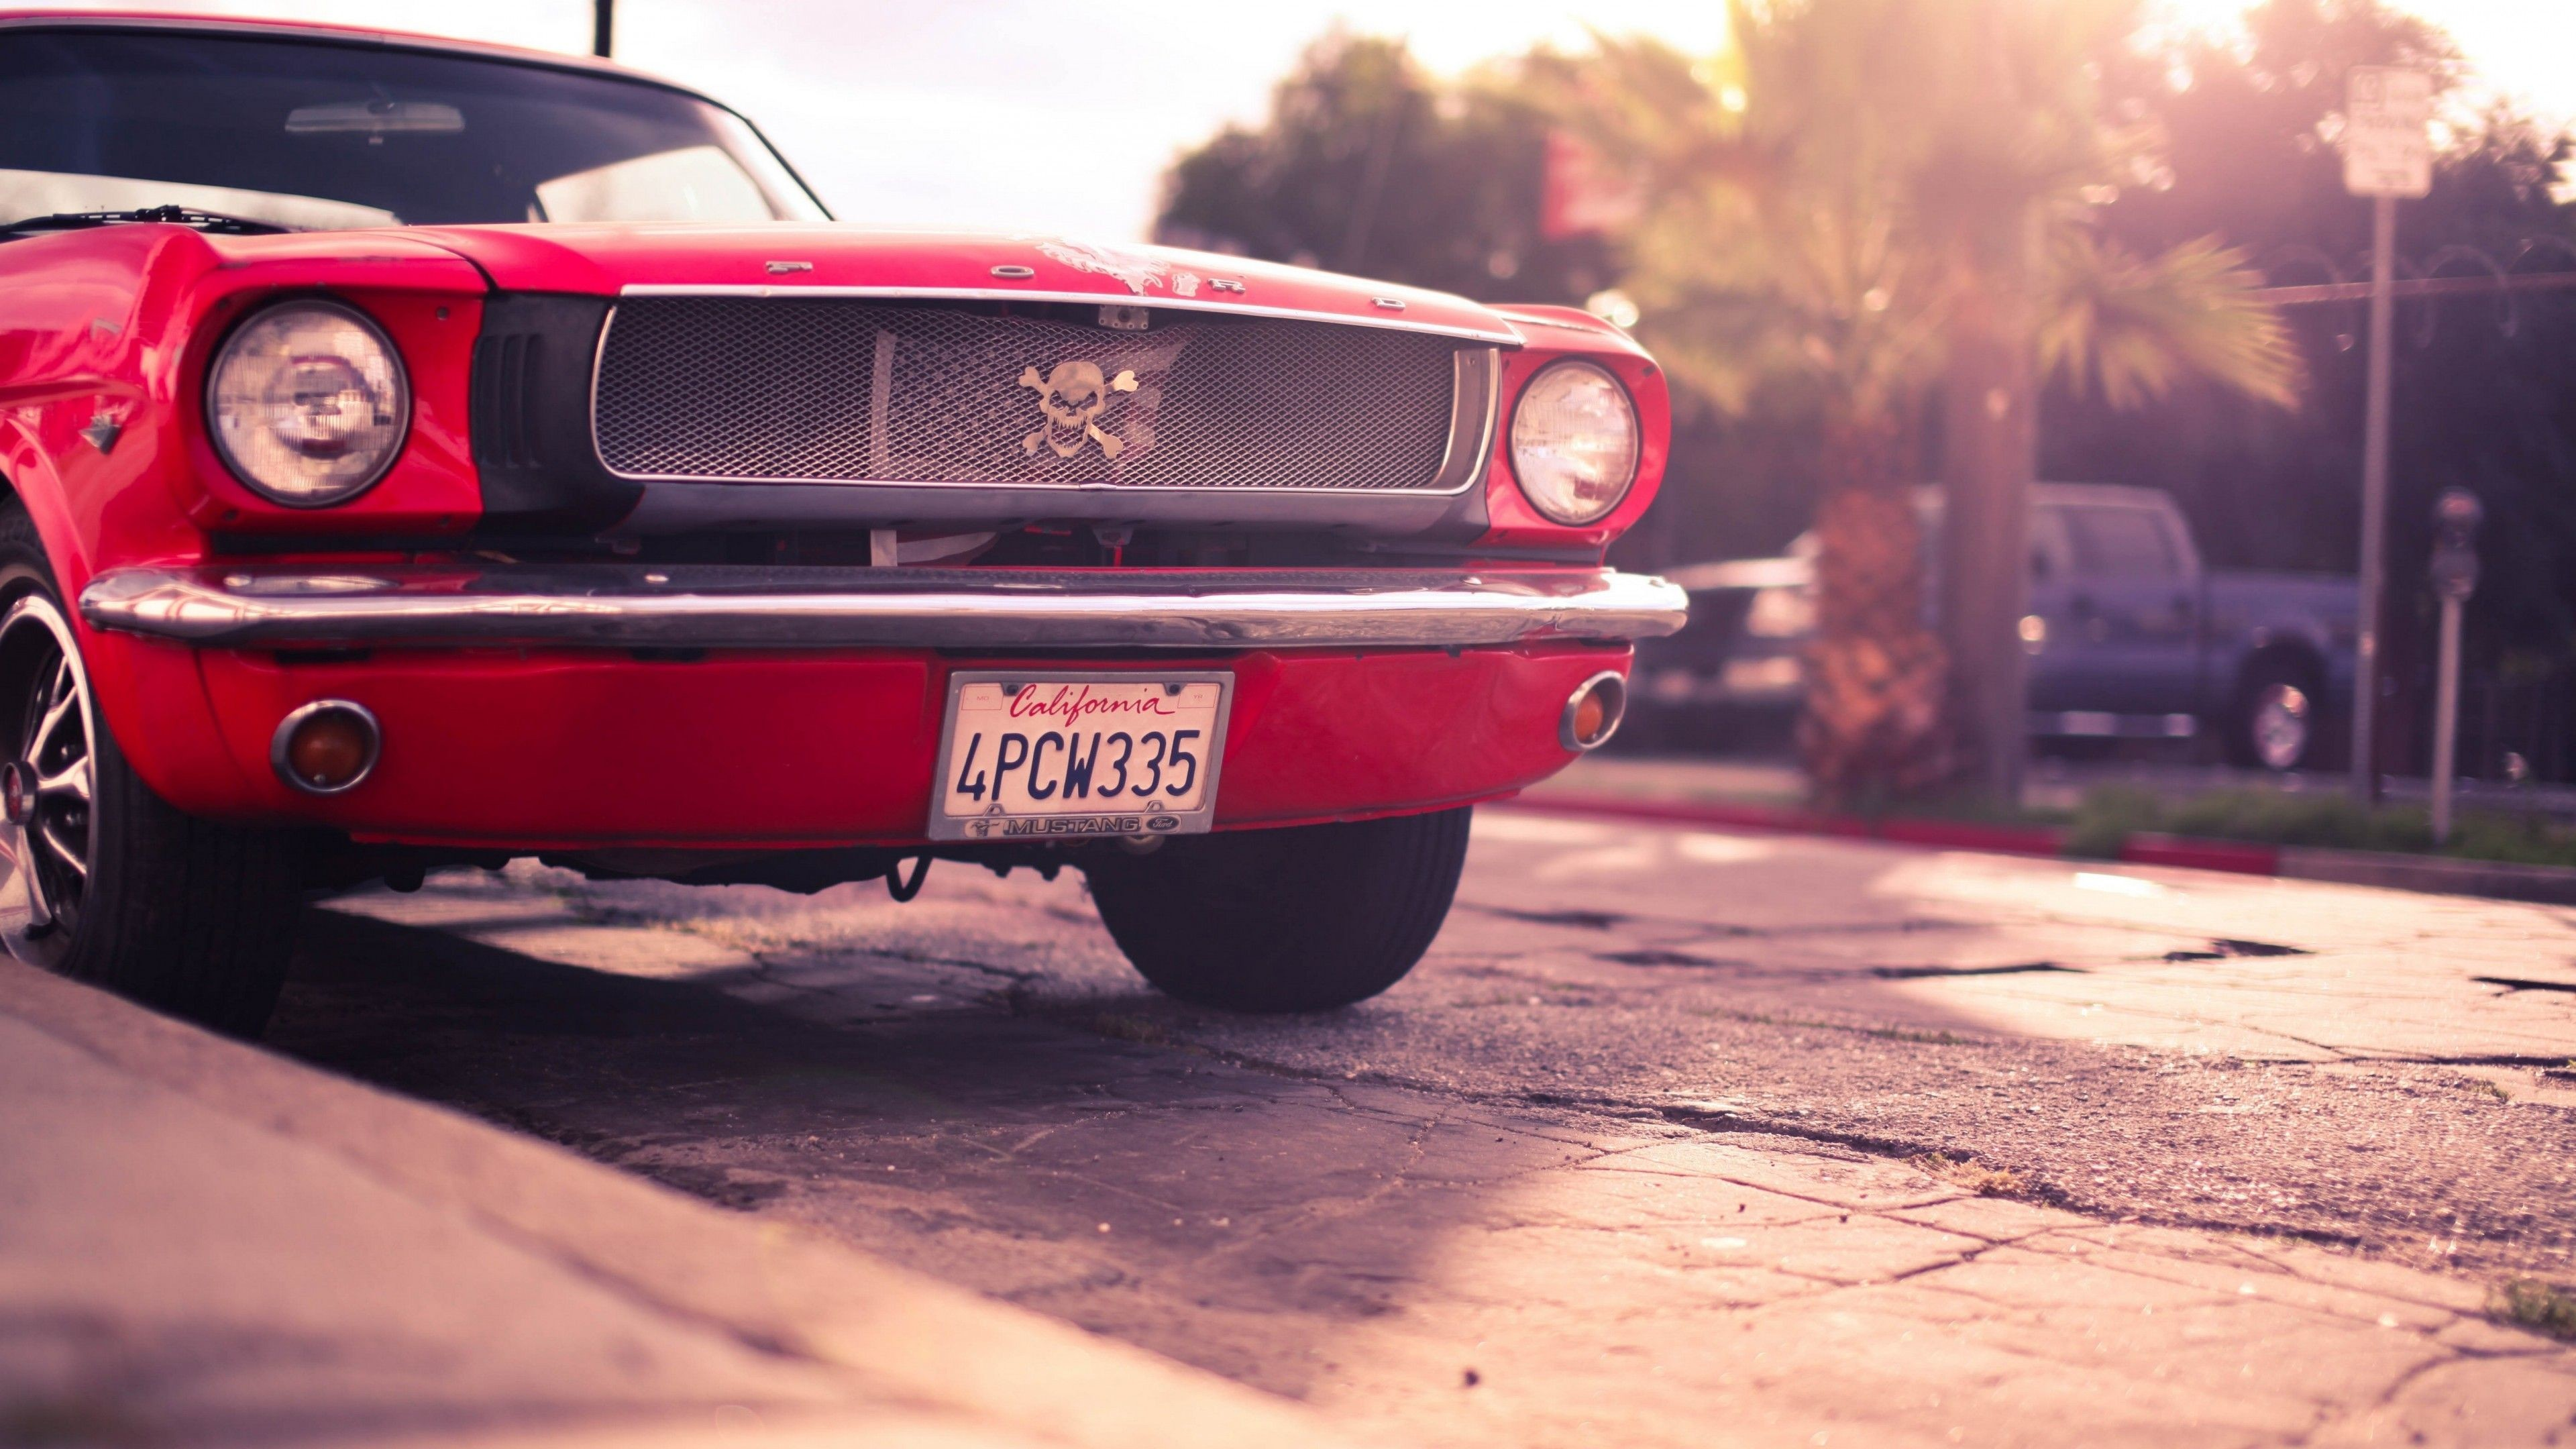 Res: 3840x2160, Ford Mustang Classic Red 4K Wallpaper #ford #mustang